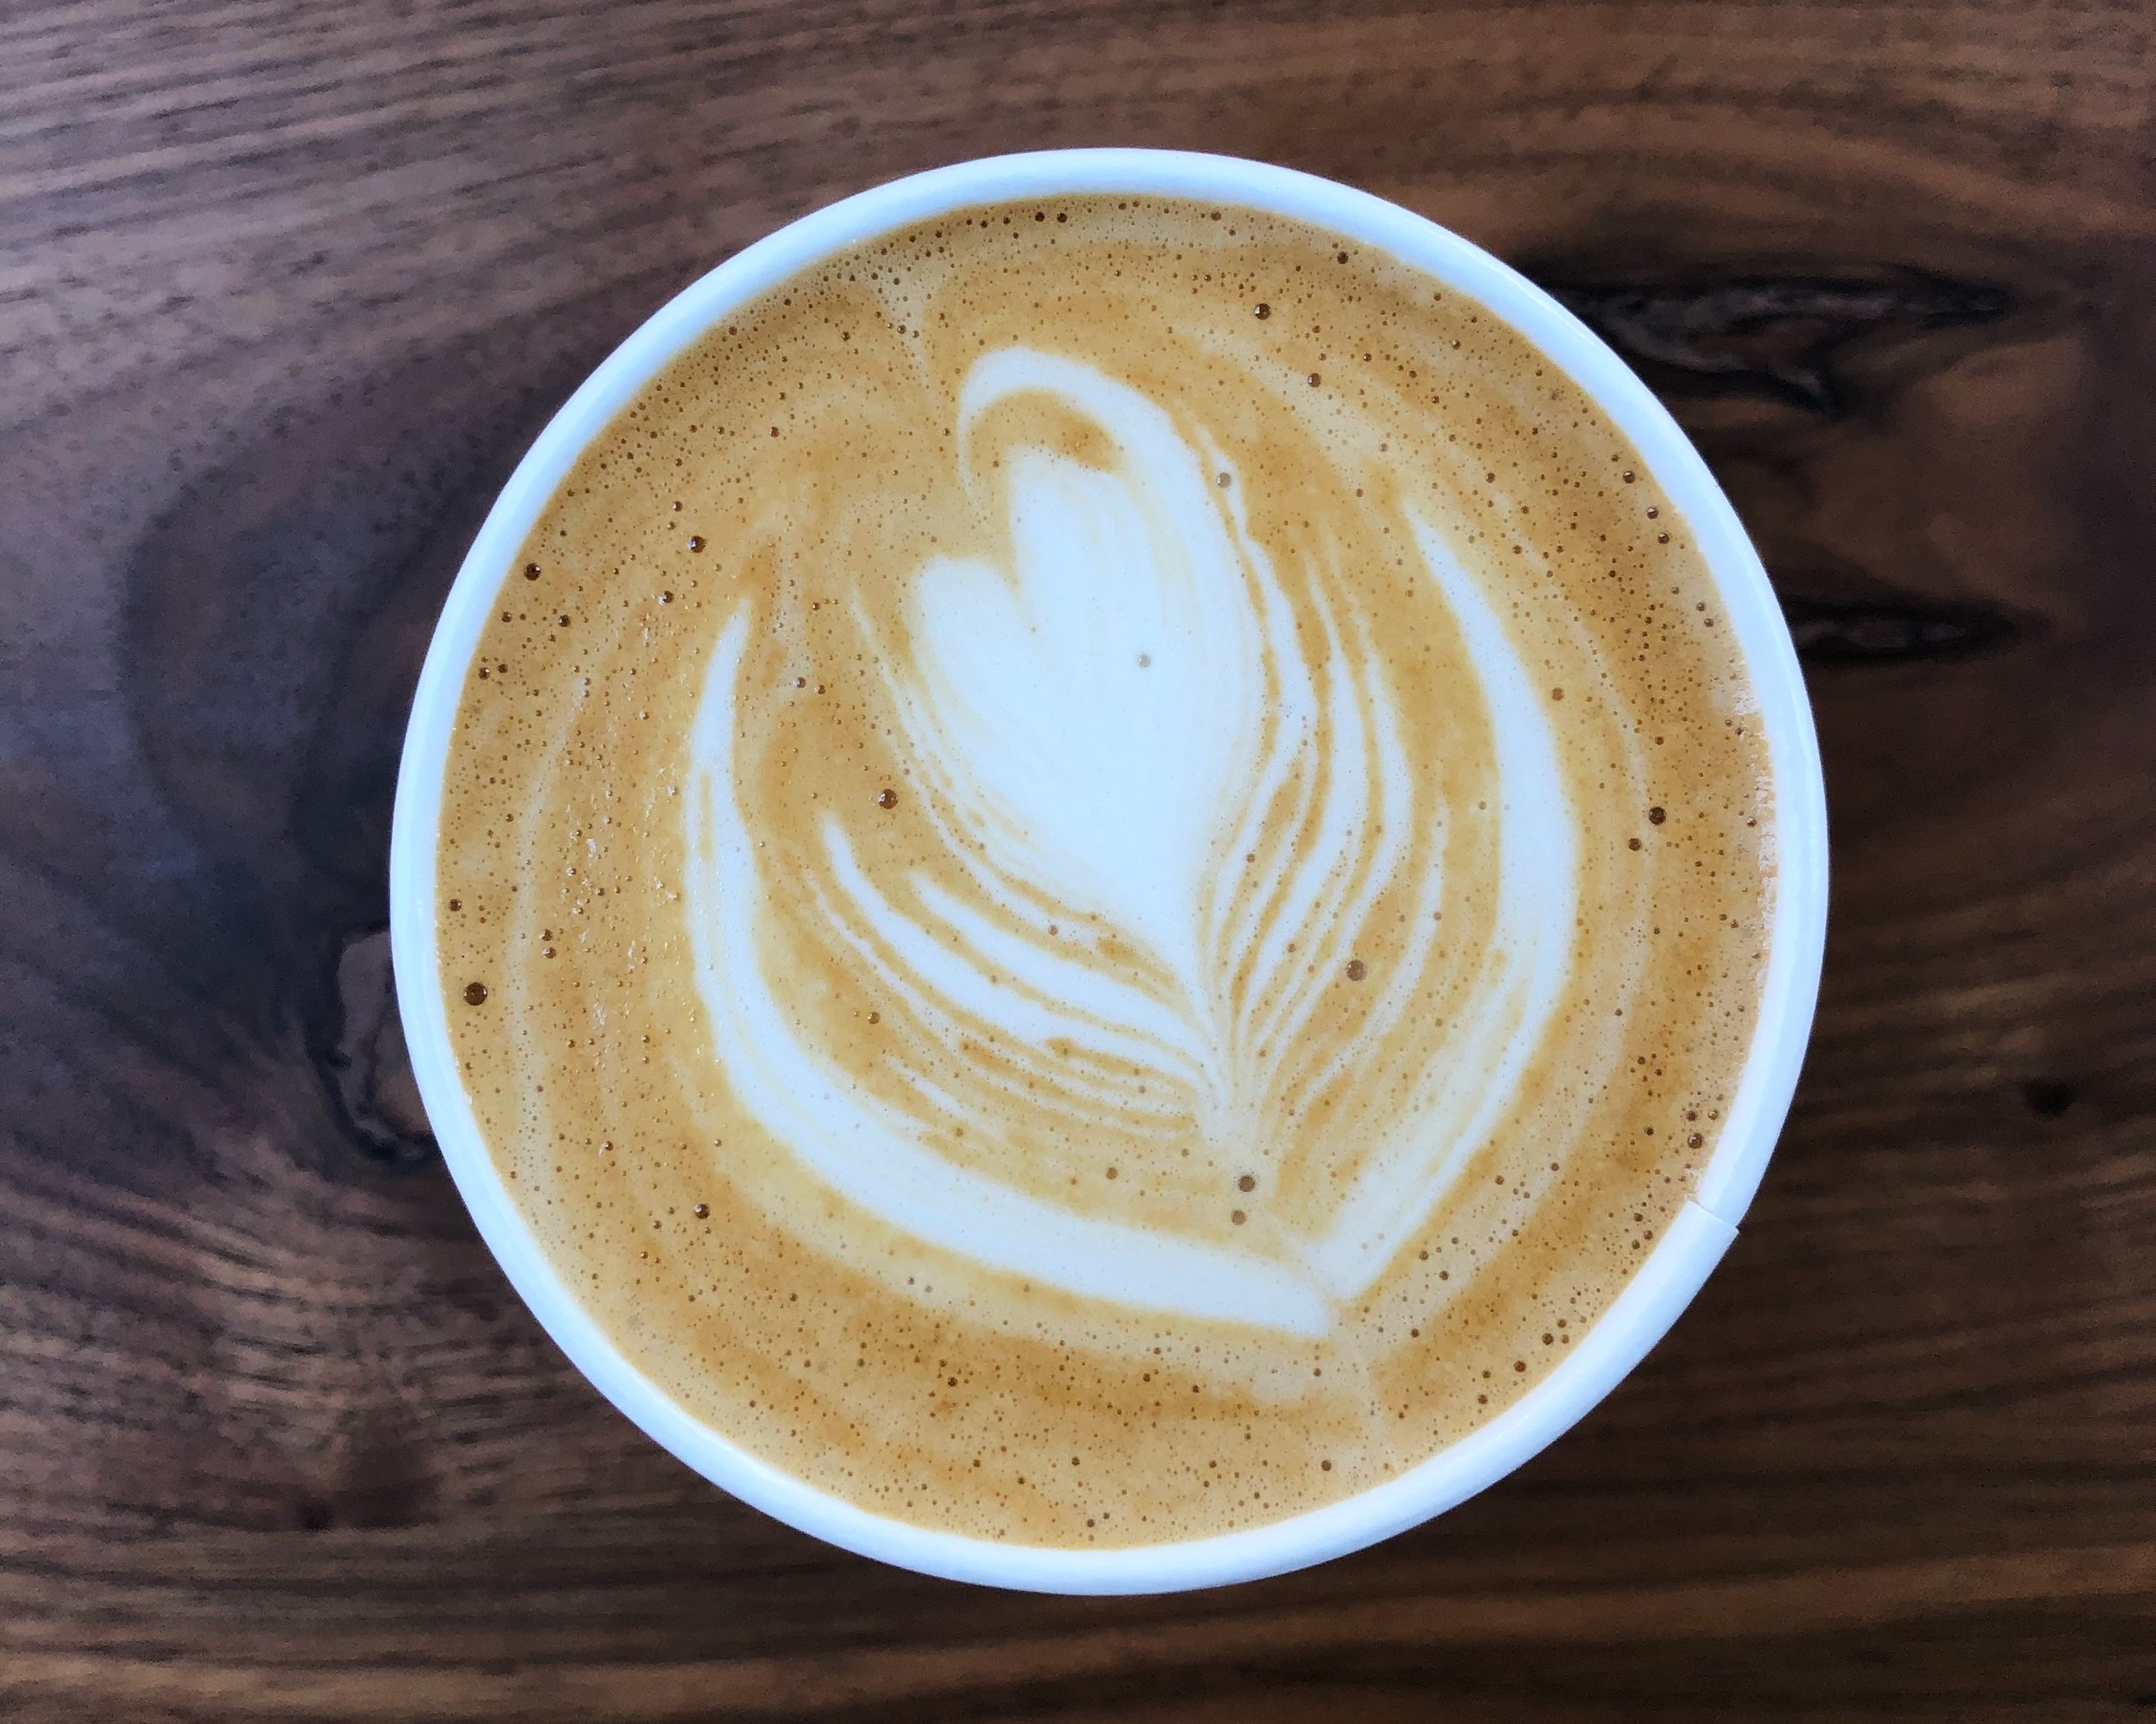 This vanilla sugar latte from Not Just Coffee is my favorite cup of jo in town.